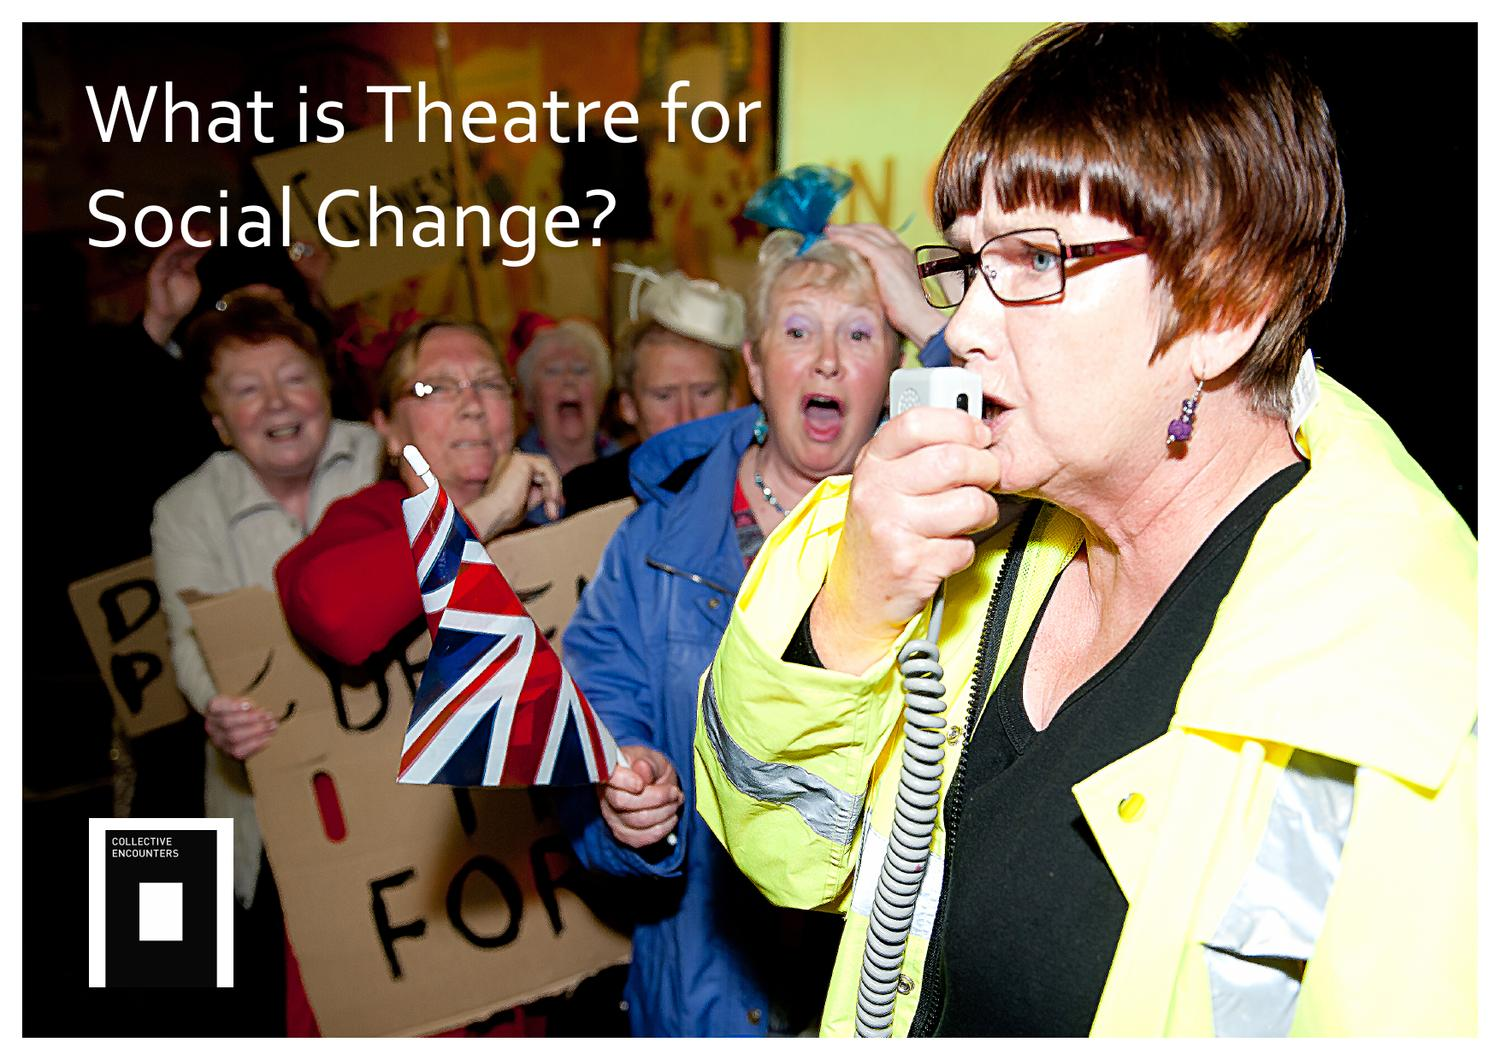 theatre for social change